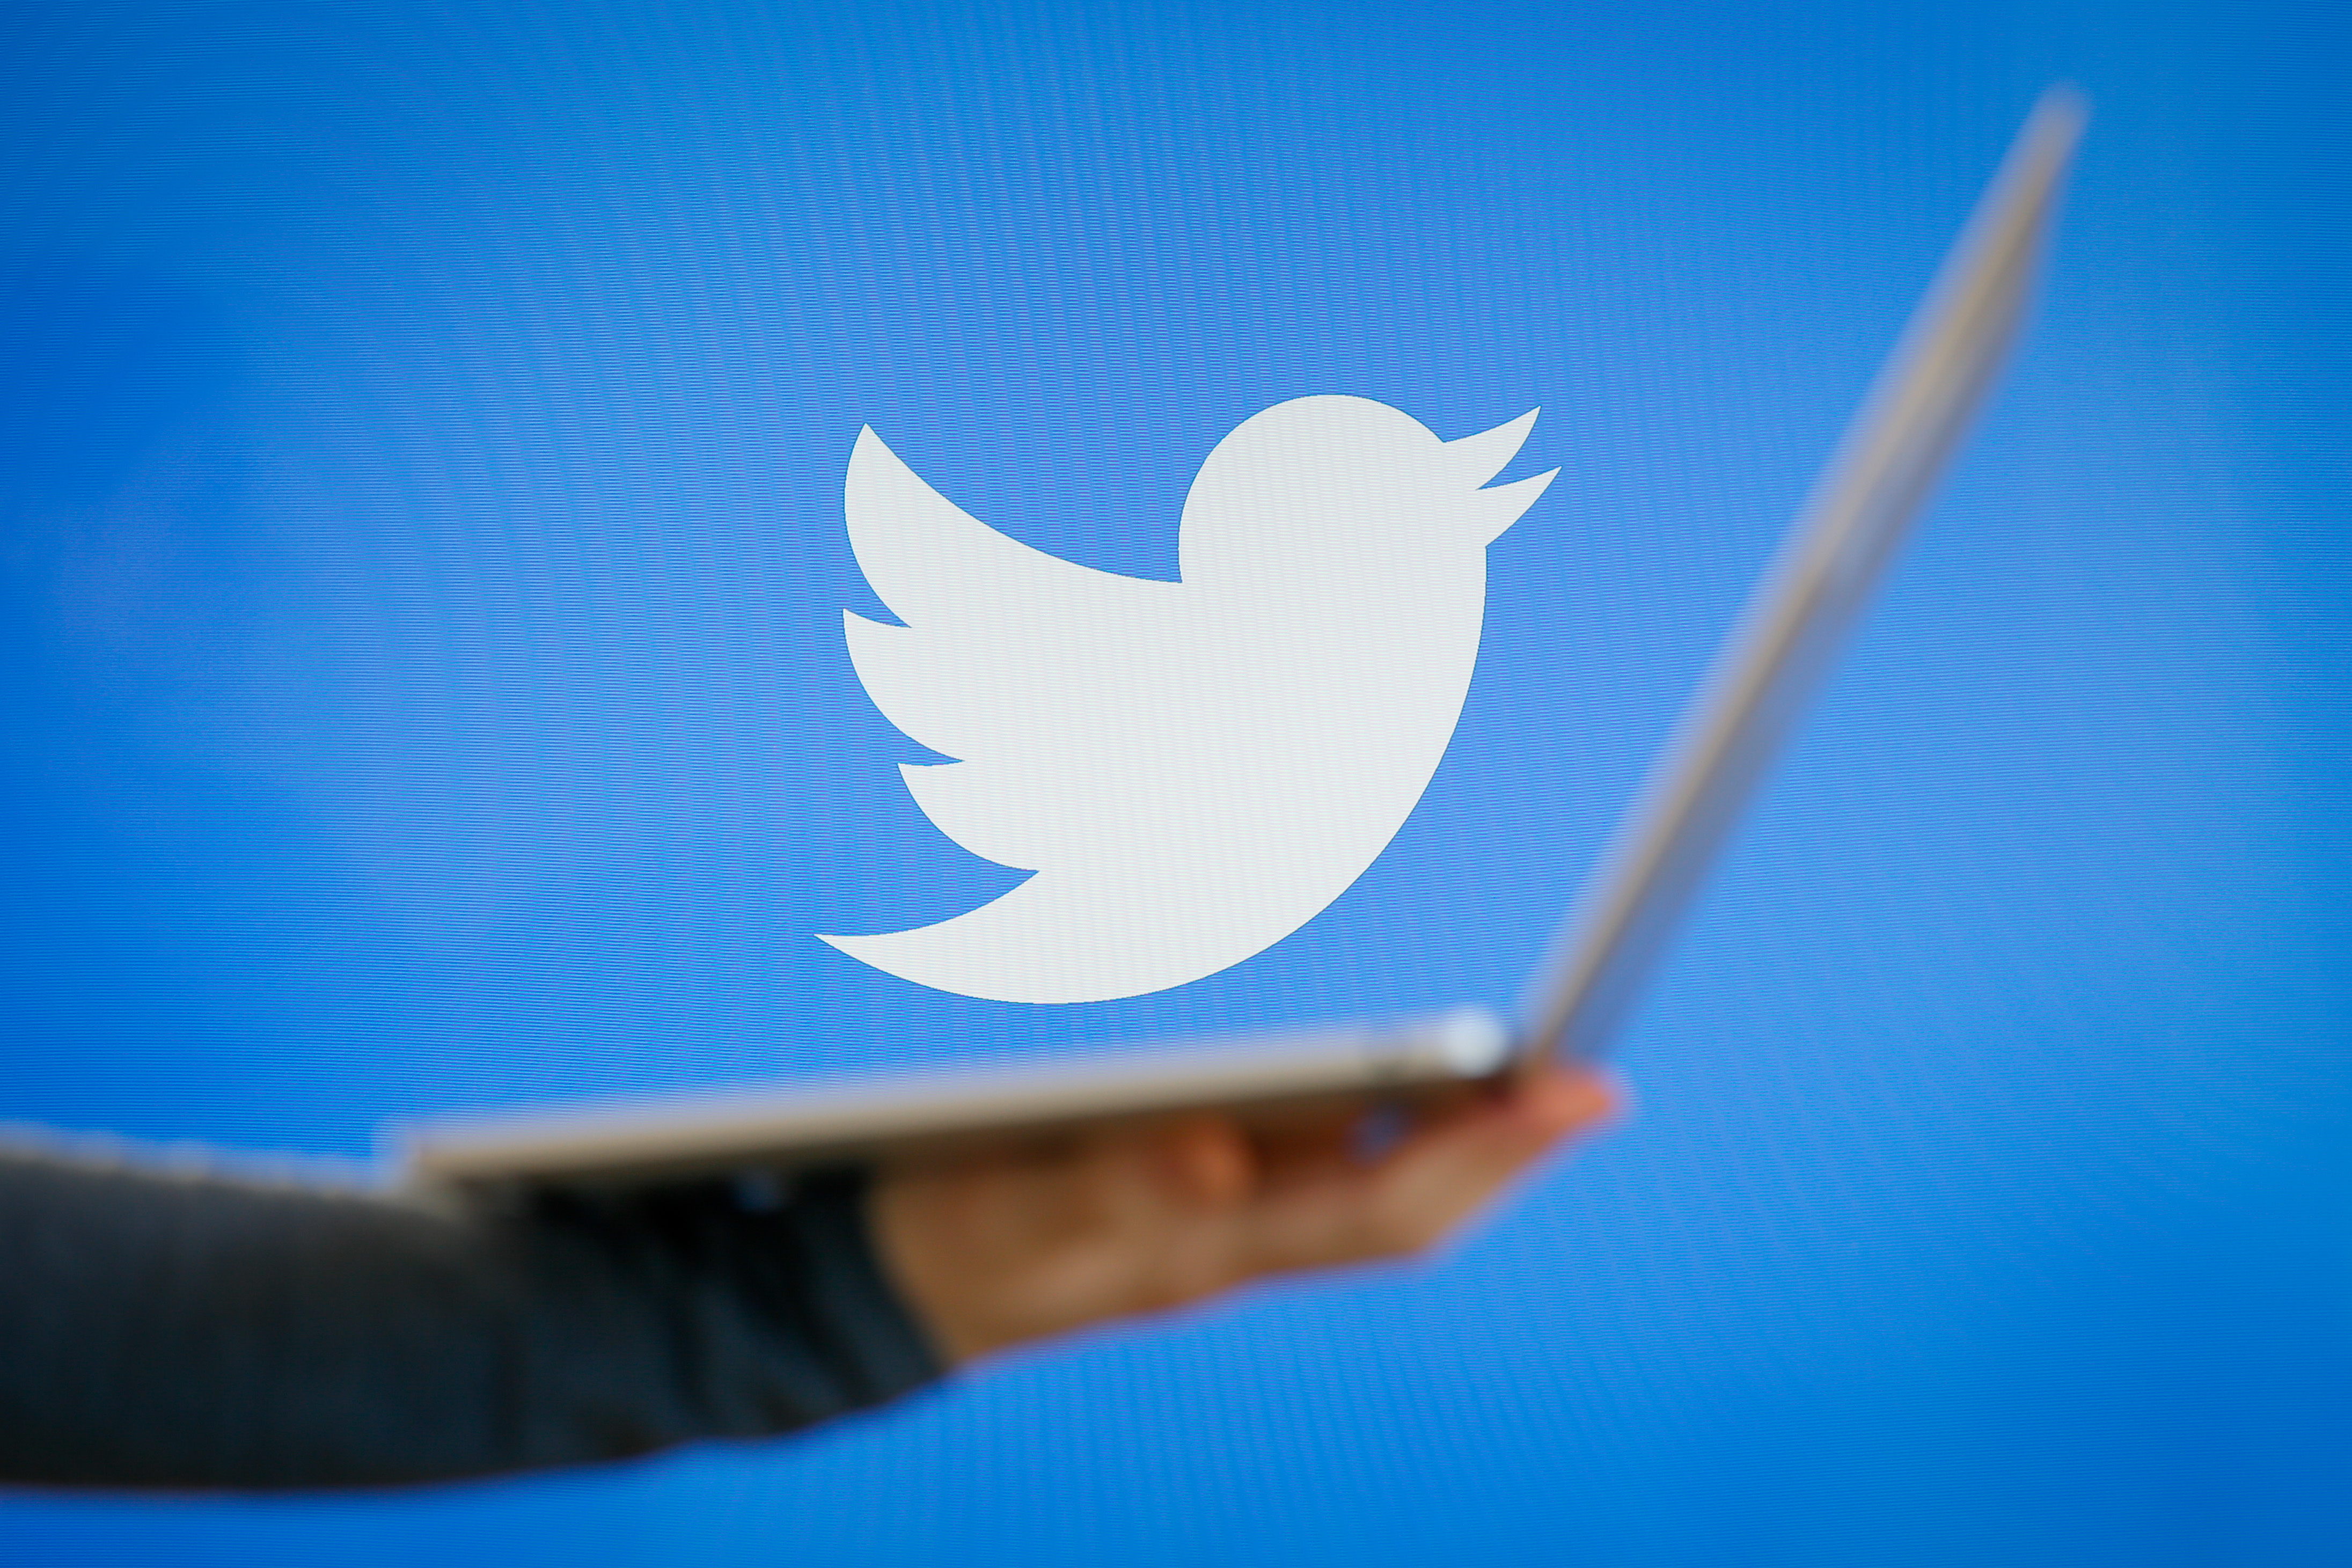 The Twitter app on digital devices